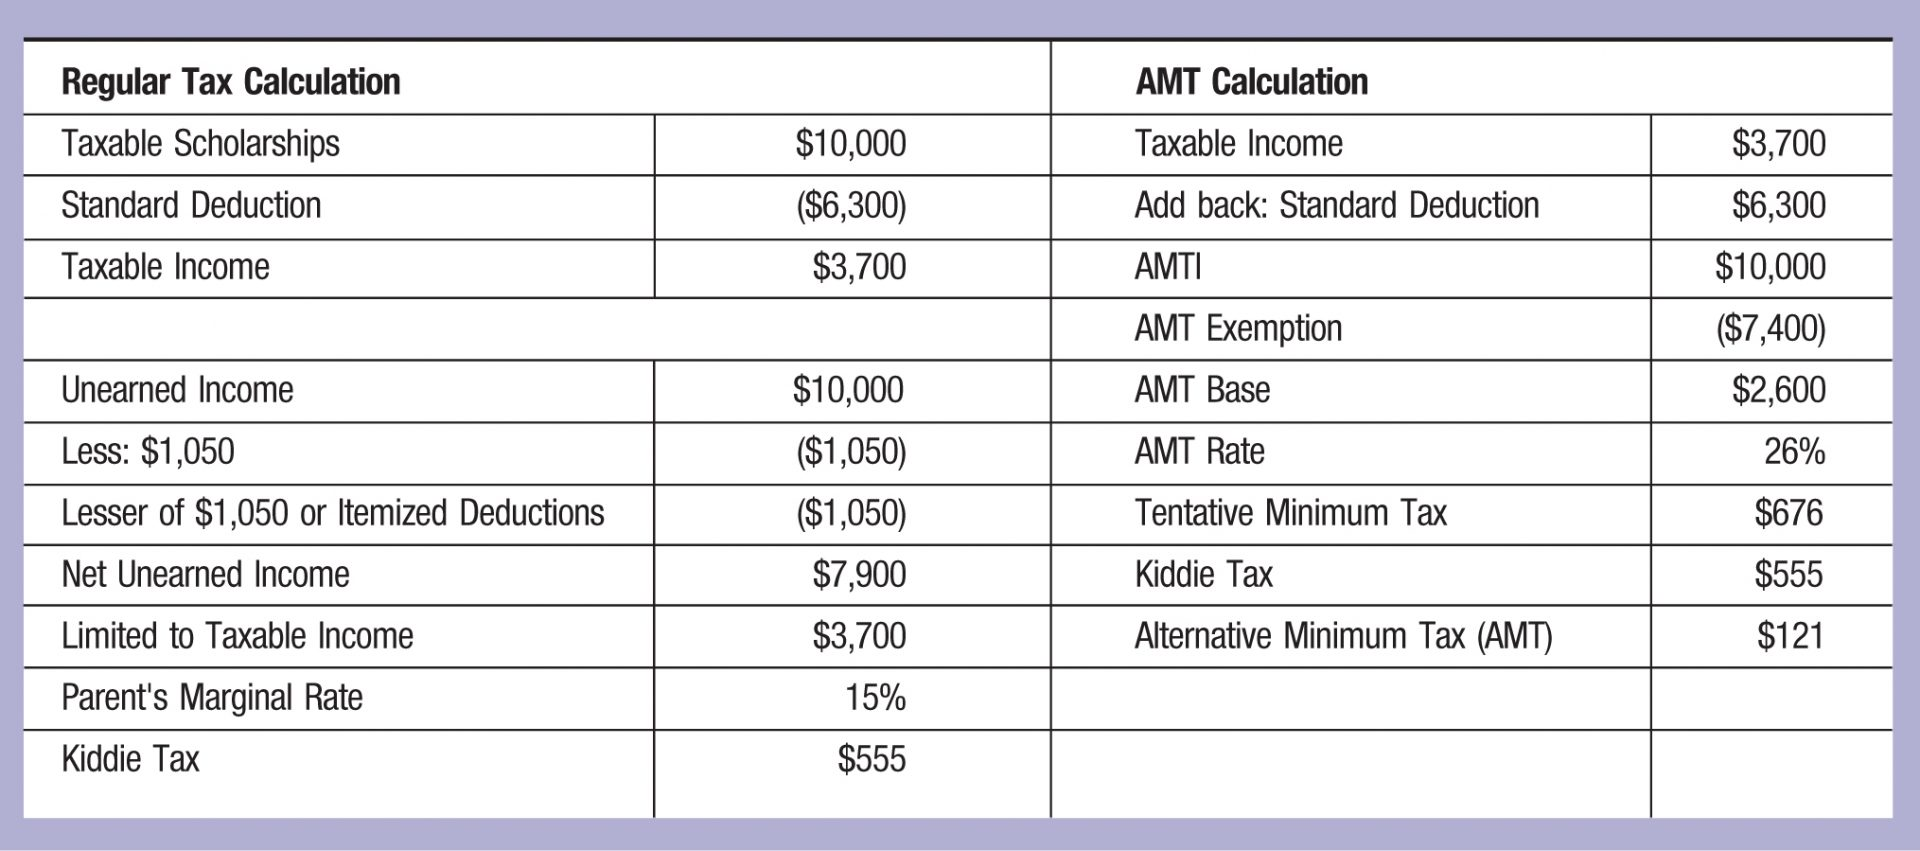 Regular Tax Calculation; AMT Calculation Taxable Scholarships; ,000; Taxable Income; ,700 Standard Deduction; (,300); Add back: Standard Deduction; ,300 Taxable Income; ,700; AMTI; ,000 AMT Exemption; (,400) Unearned Income; ,000; AMT Base ,600 Less: ,050; (,050); AMT Rate; 26% Lesser of ,050 or Itemized Deductions; (,050); Tentative Minimum Tax; 6 Net Unearned Income; ,900; Kiddie Tax; 5 Limited to Taxable Income; ,700; Alternative Minimum Tax (AMT); 1 Parent